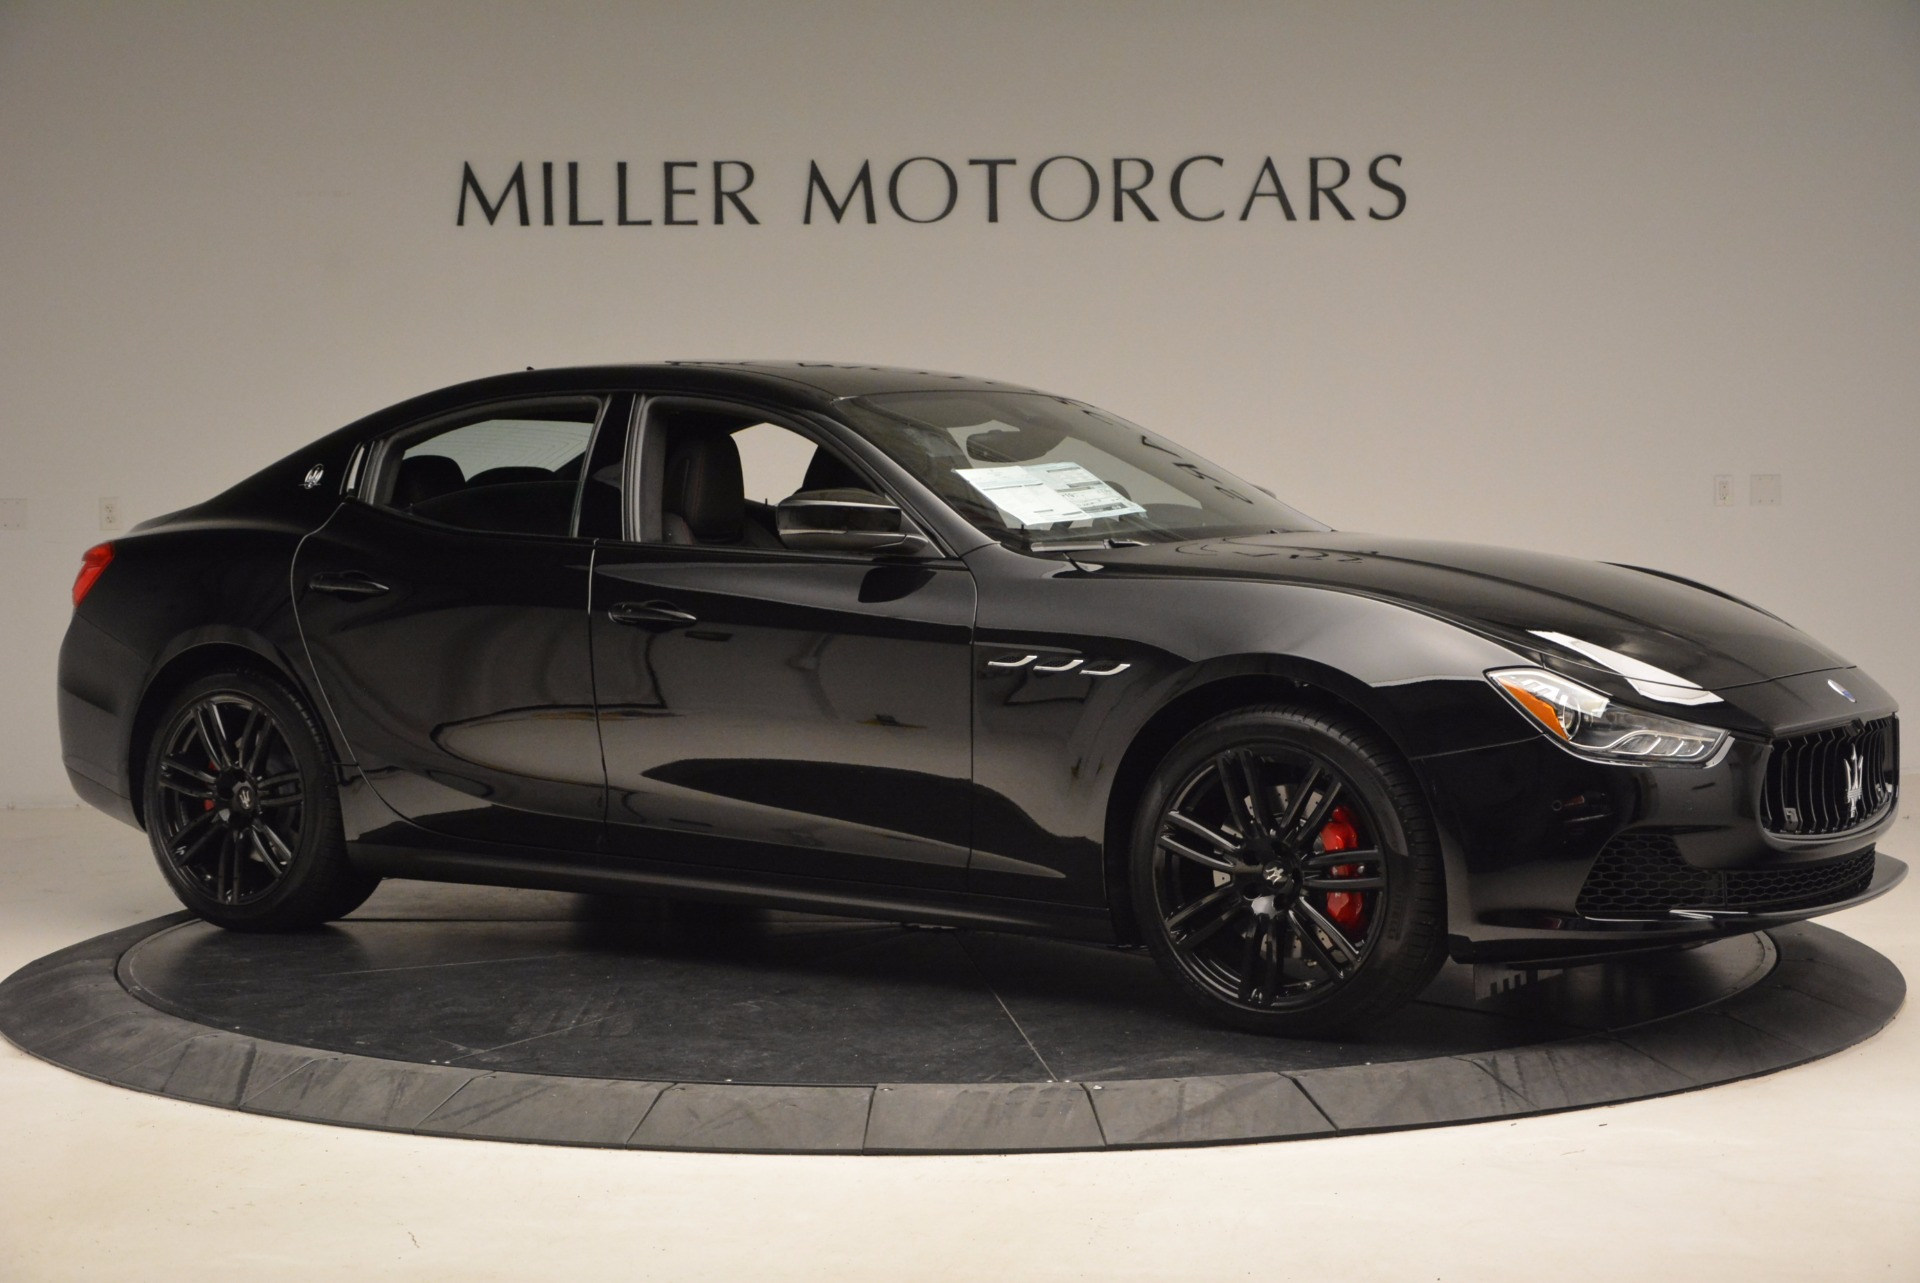 New 2017 Maserati Ghibli Nerissimo Edition S Q4 For Sale In Westport, CT 1391_p10